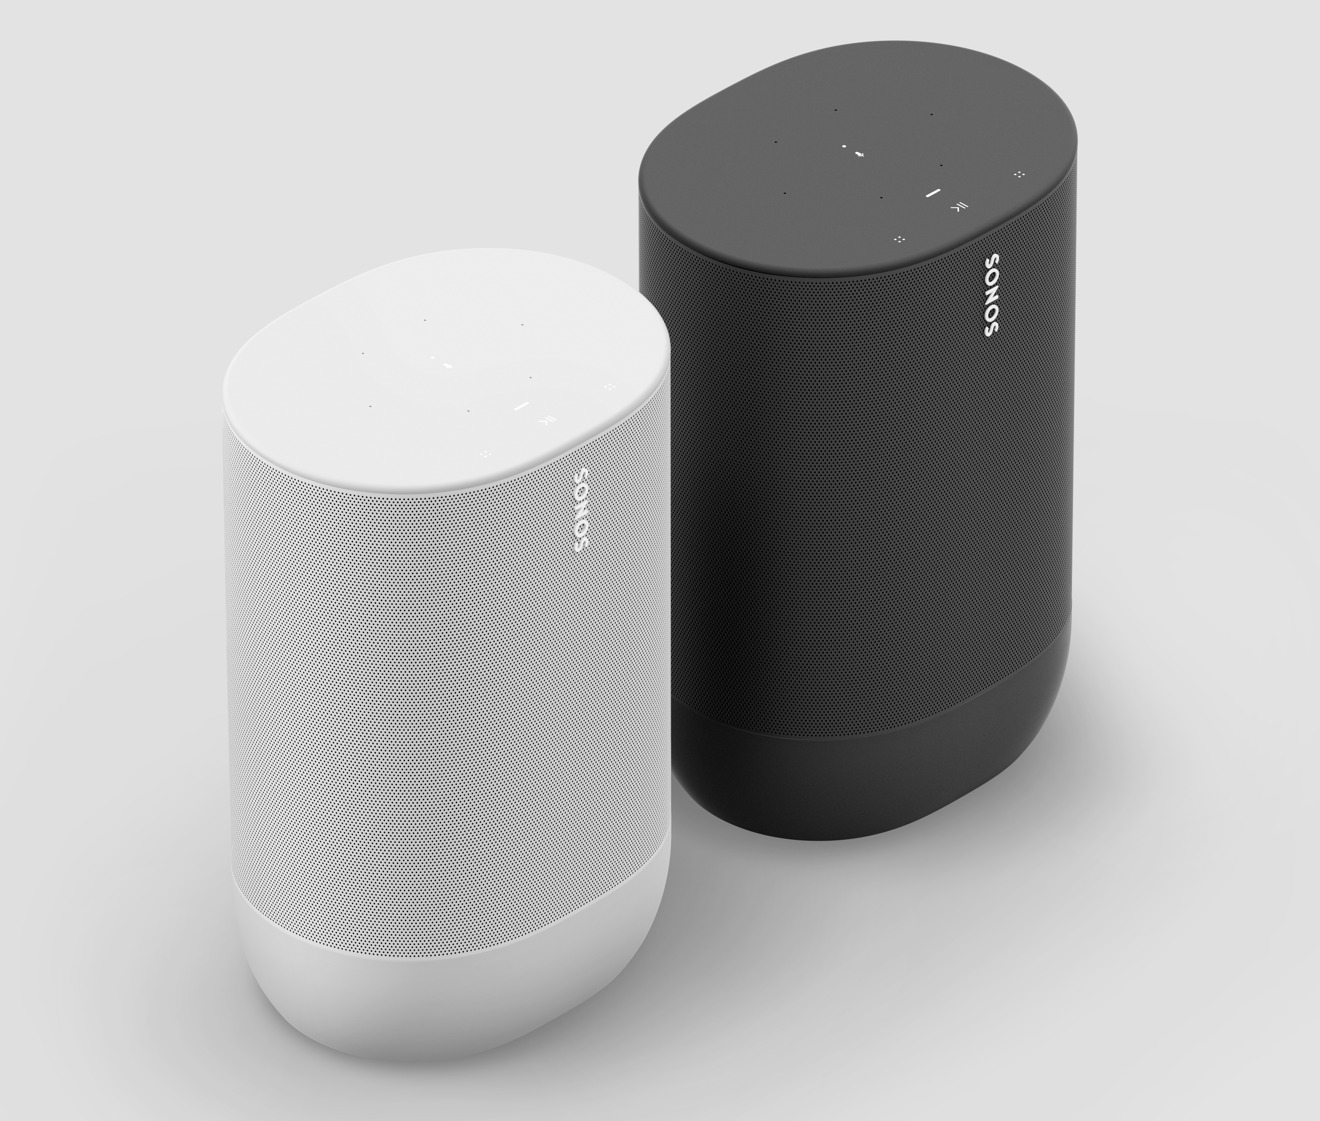 Lunar White and black colorways of Sonos Move